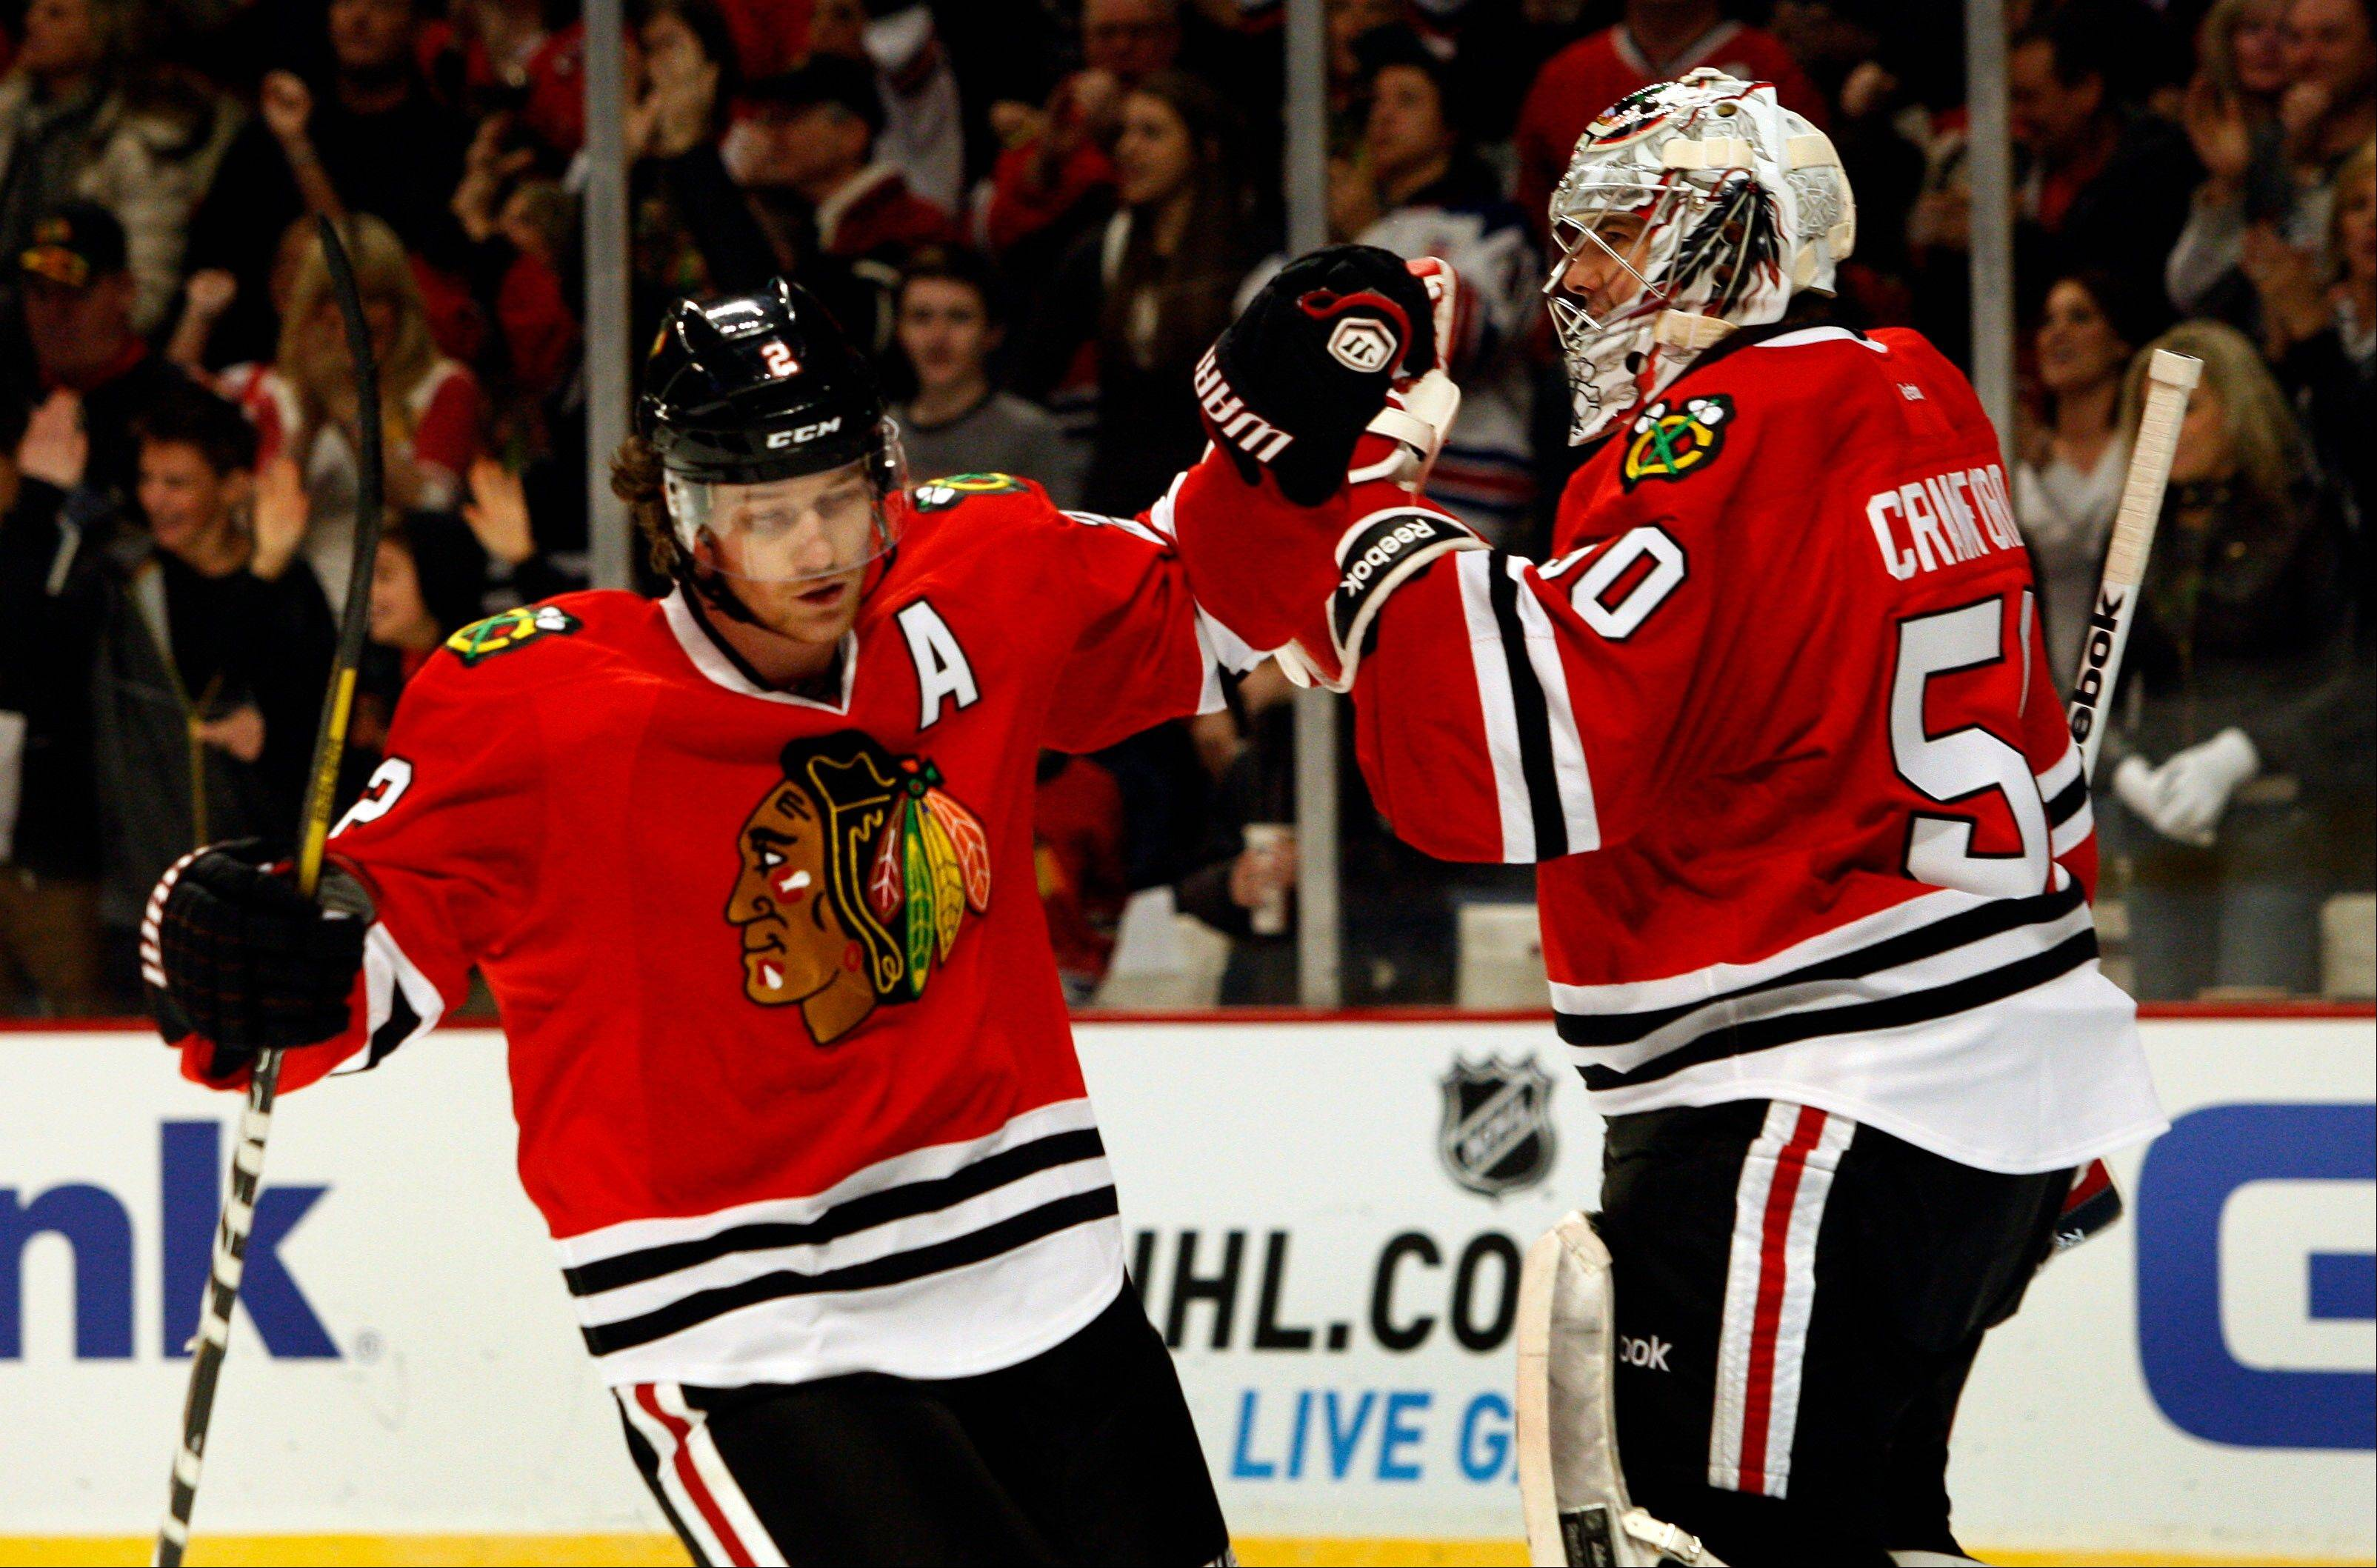 Blackhawks defenseman Duncan Keith, left, is congratulated by goalie Corey Crawford in Sunday's first period after Keith scored against the Detroit Red Wings.